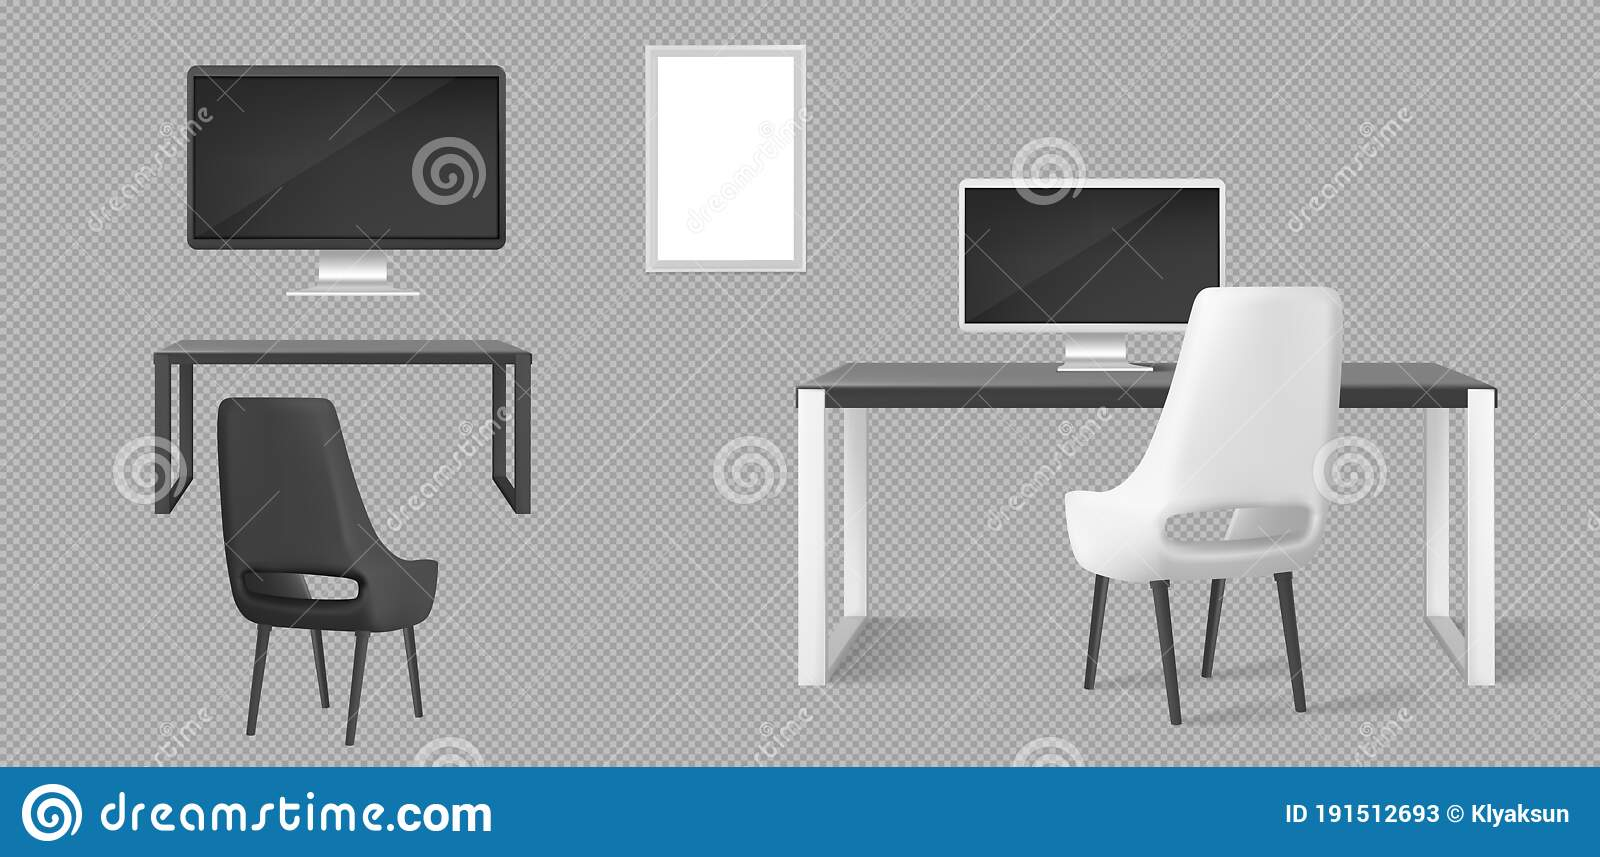 Office Furniture Desk Chairs And Monitors Stock Vector Illustration Of Design Director 191512693